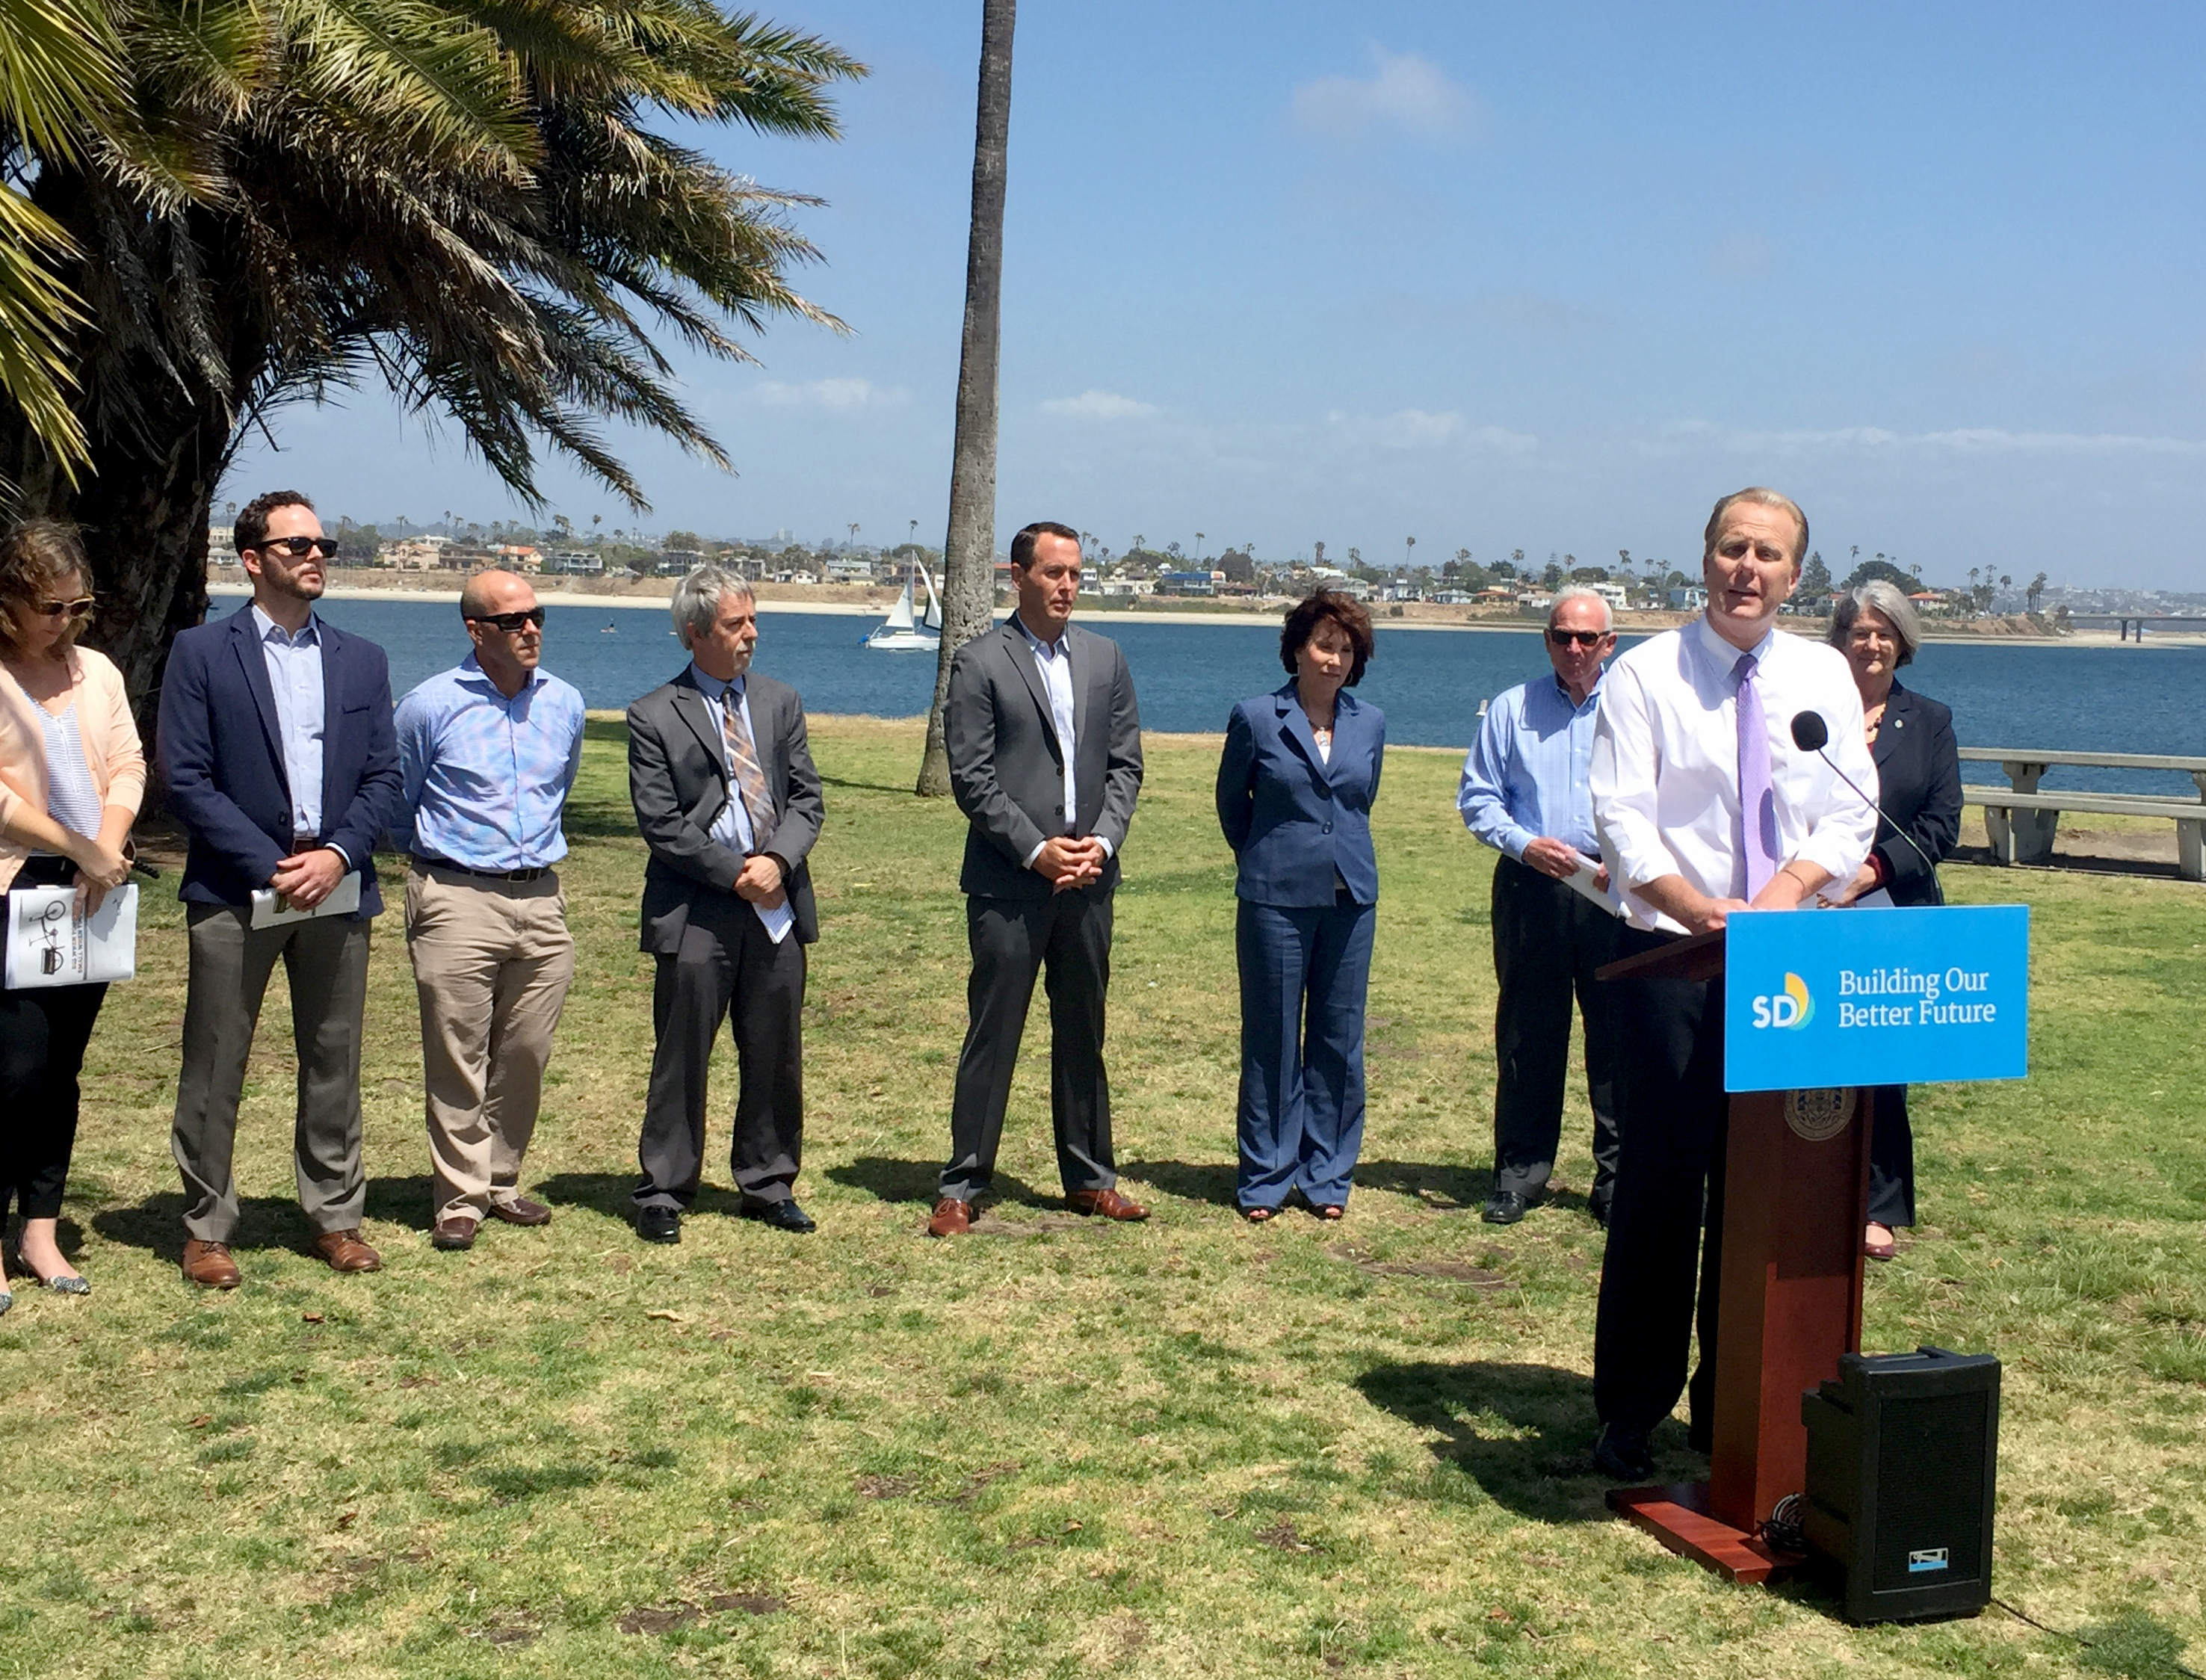 Mayor Kevin L. Faulconer outlines funding to kick off San Diego's landmark Climate Action Plan